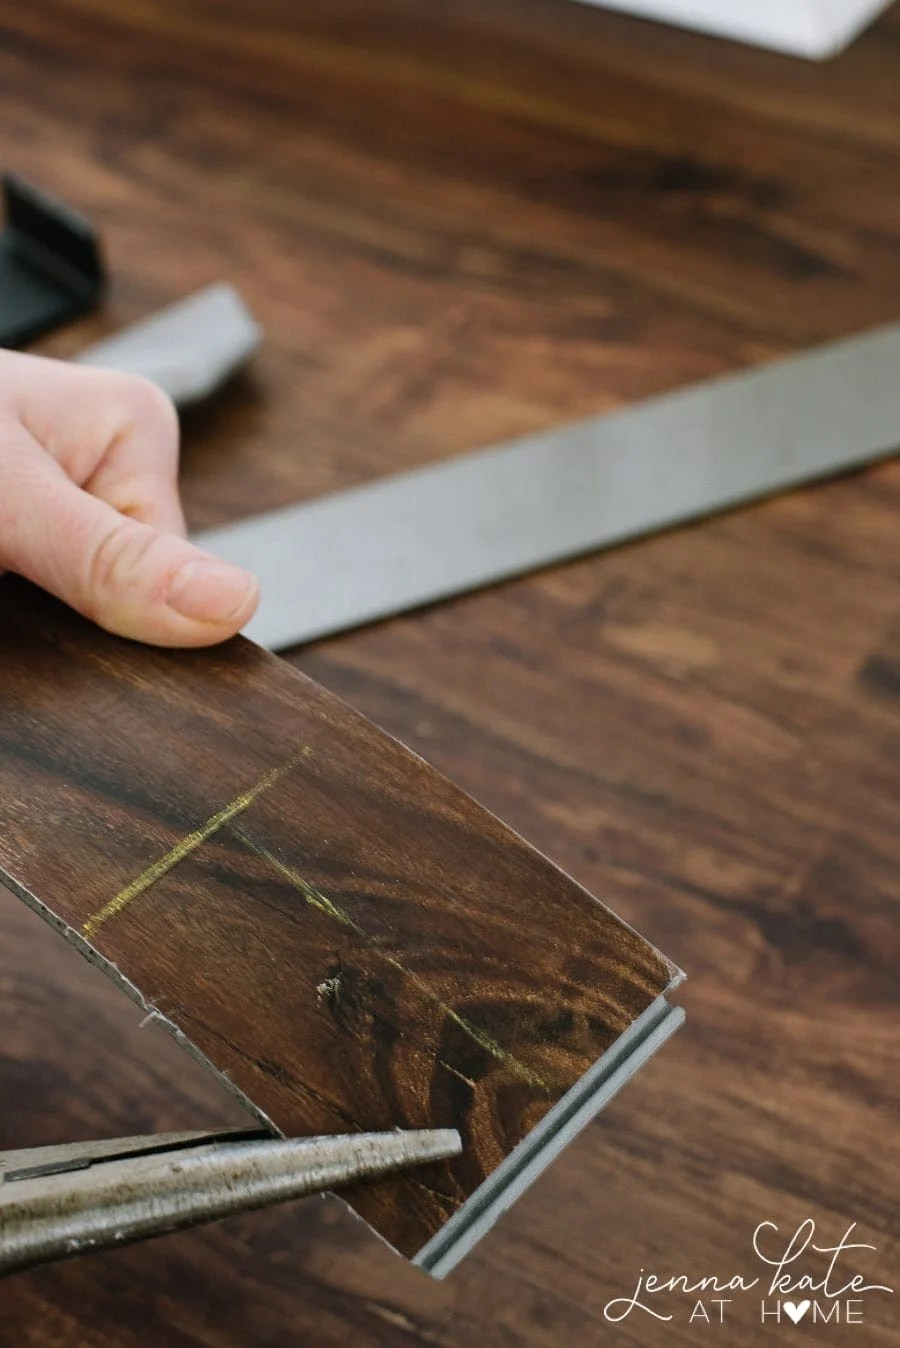 Cutting awkard measurements from the LVP flooring